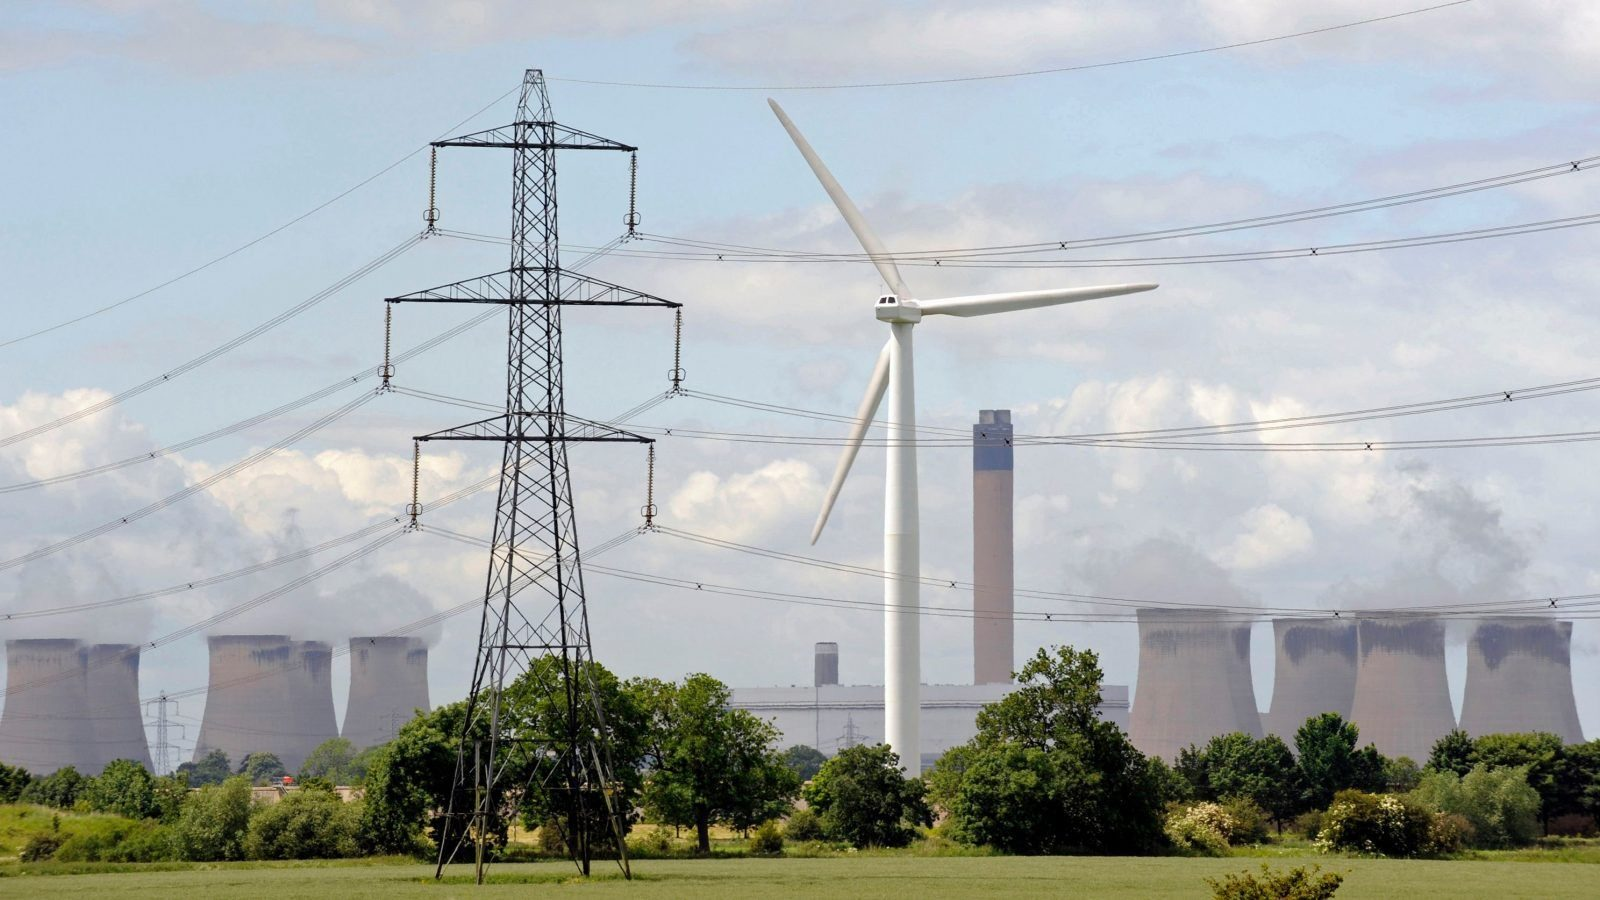 """A wind turbine is pictured at Loftsome Bridge Treatment Works, in front of Drax Power Station near Selby, northern England, June 19, 2008.   As many as a quarter of British homes could be fitted with solar heating systems and thousands of wind turbines erected across the country under government plans for a """"green revolution"""" to be set out around June 28, 2008.  Photo taken June 19, 2008.      REUTERS/Nigel Roddis    (BRITAIN) - GM1E46L1H0301"""